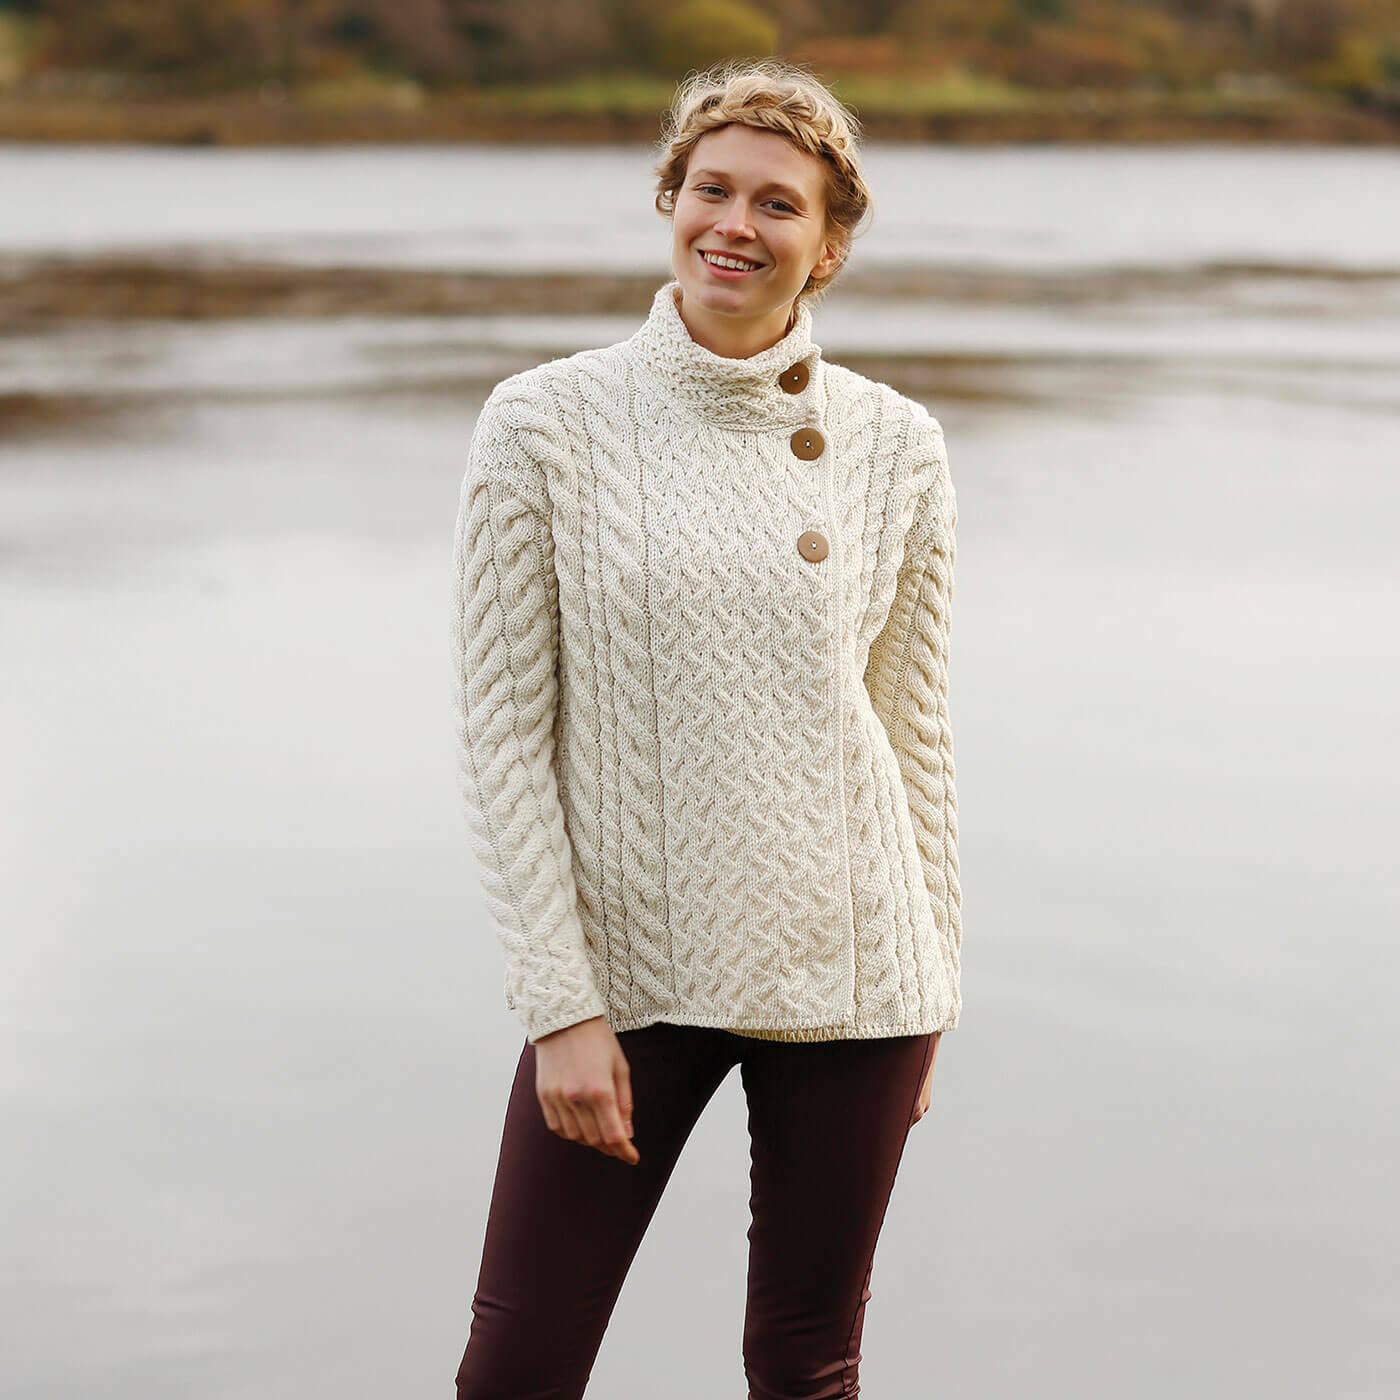 Women's Aran 3 Button Wool Sweater - Natural, Imported from Ireland, B840-367